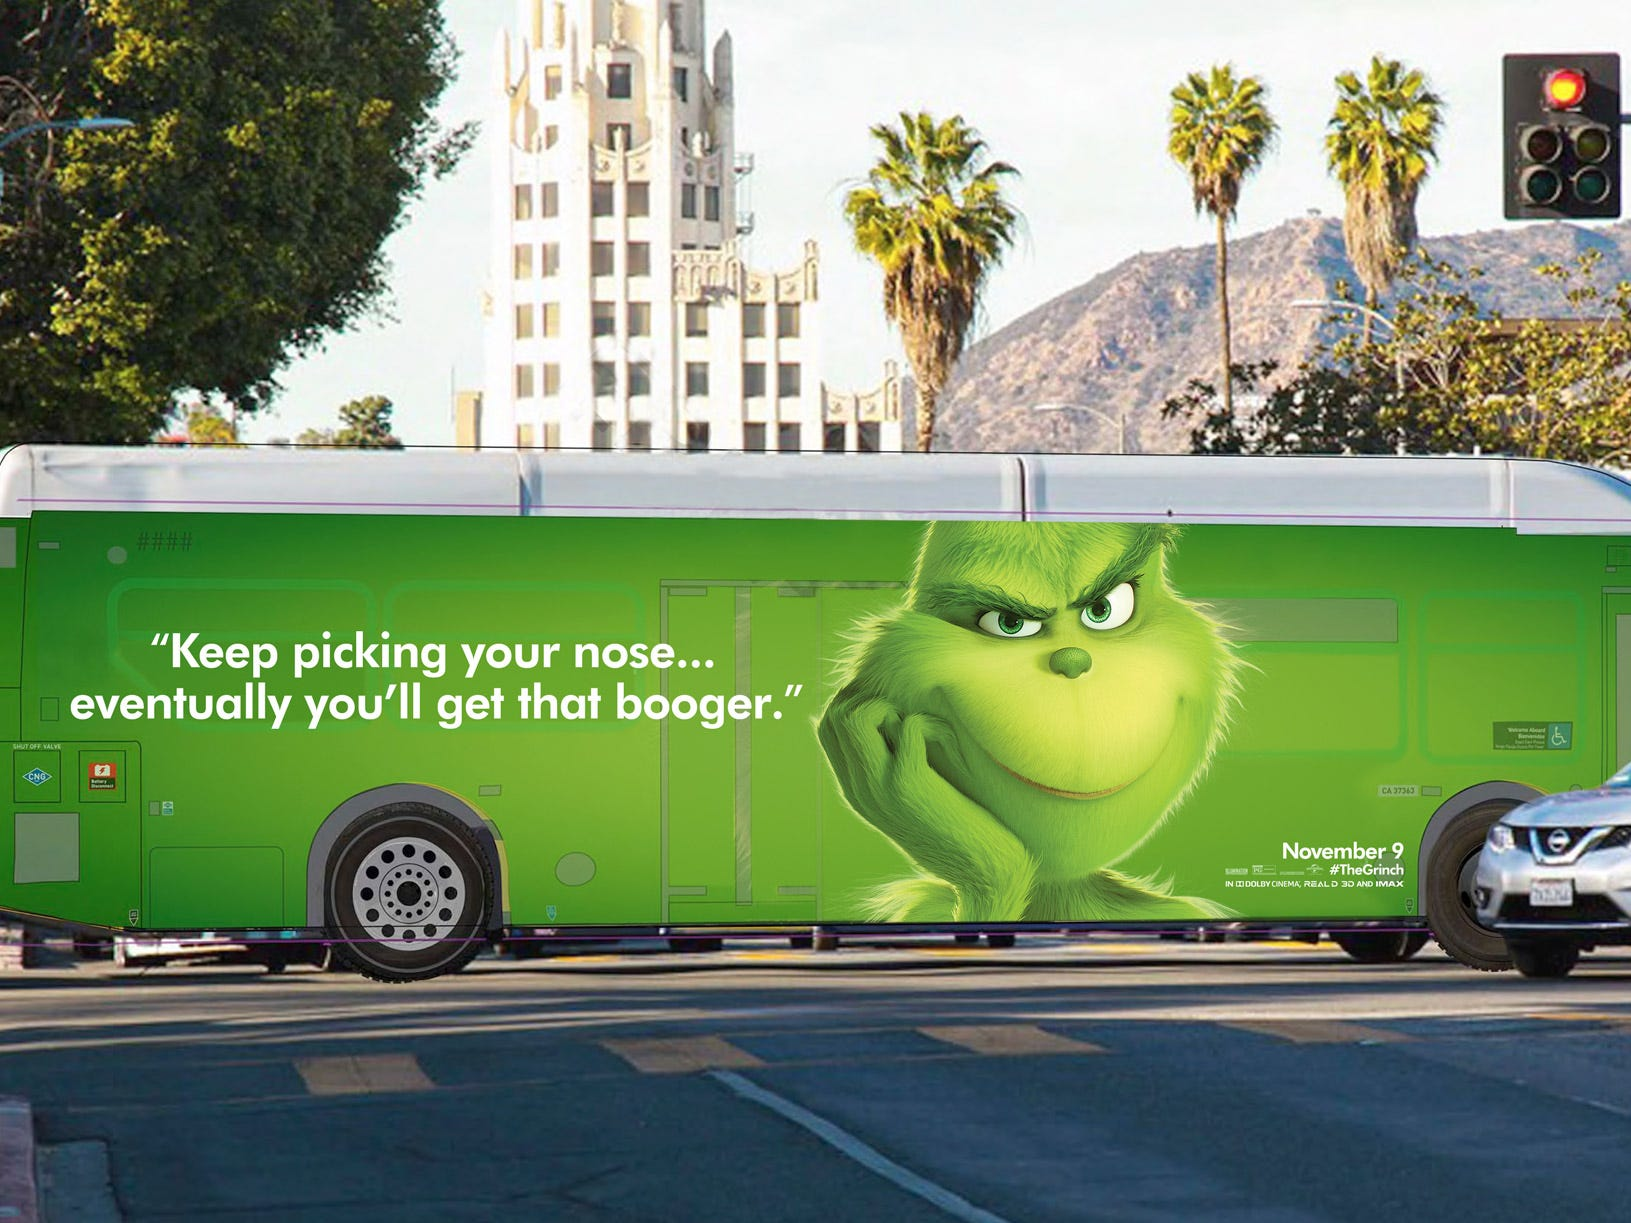 'Grinch' unleashed: 14 withering billboard jabs towards US cities